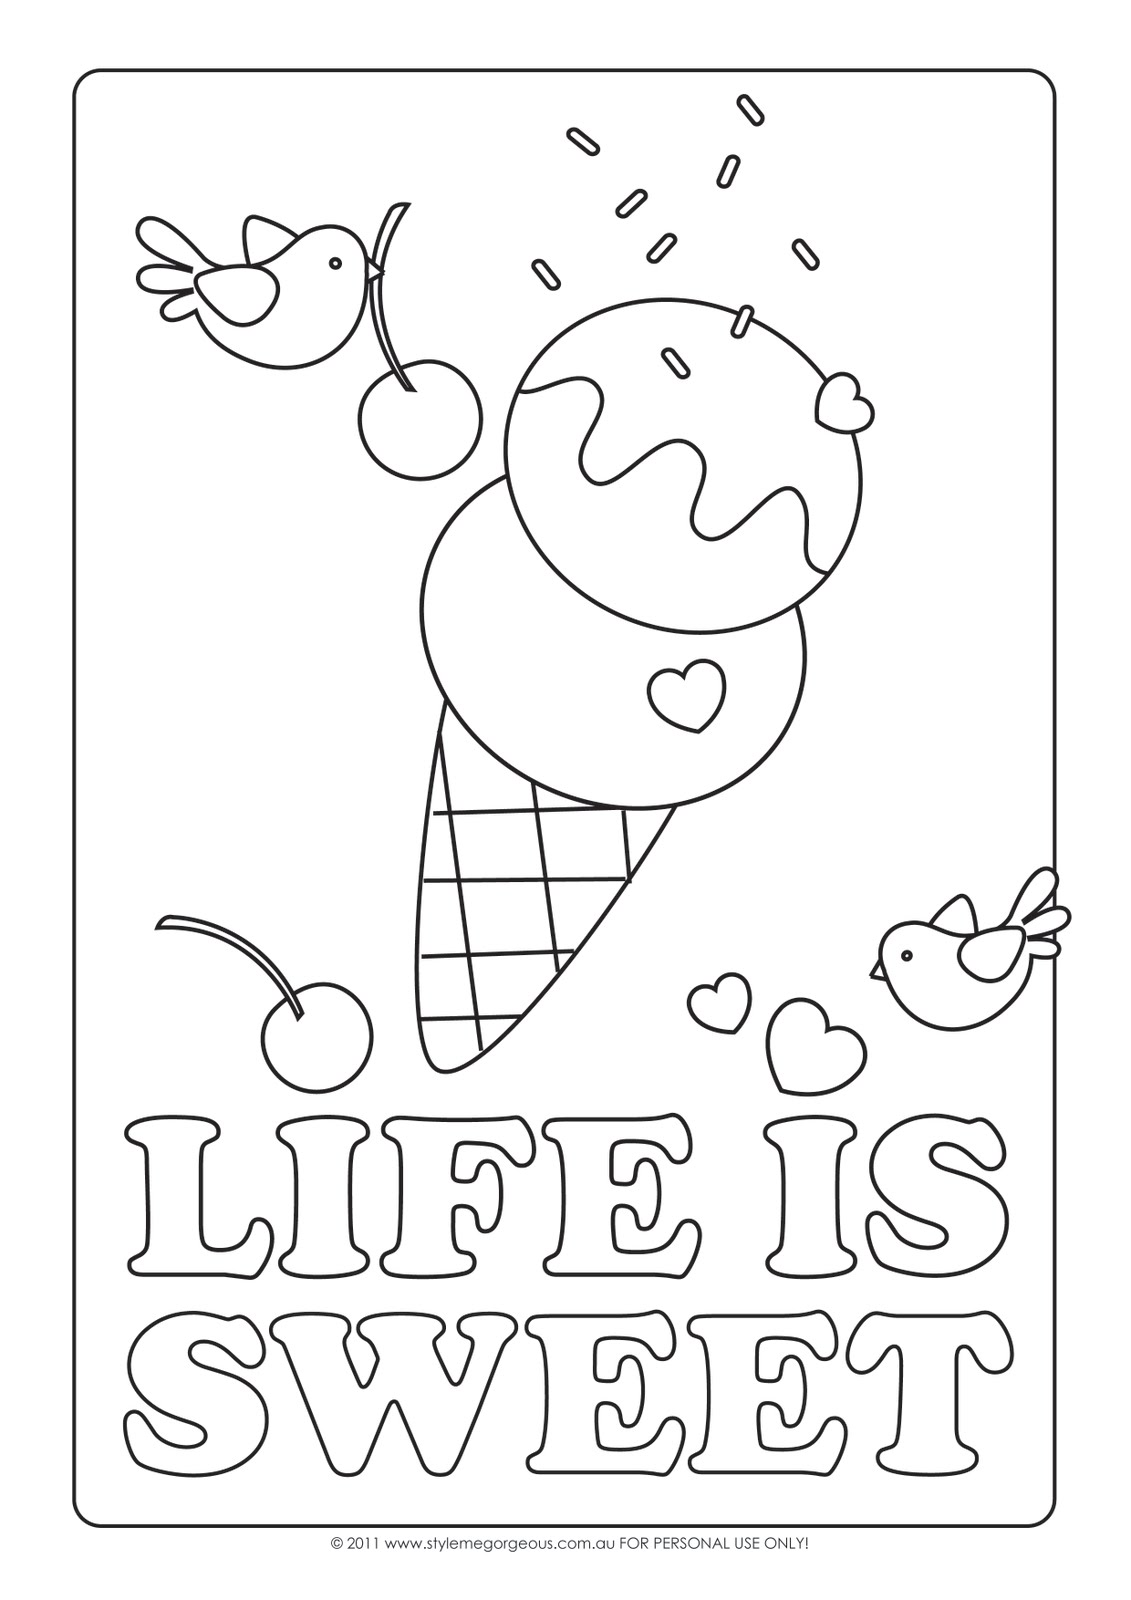 Coloring Pages For Kids: Ice Cream Coloring Pages